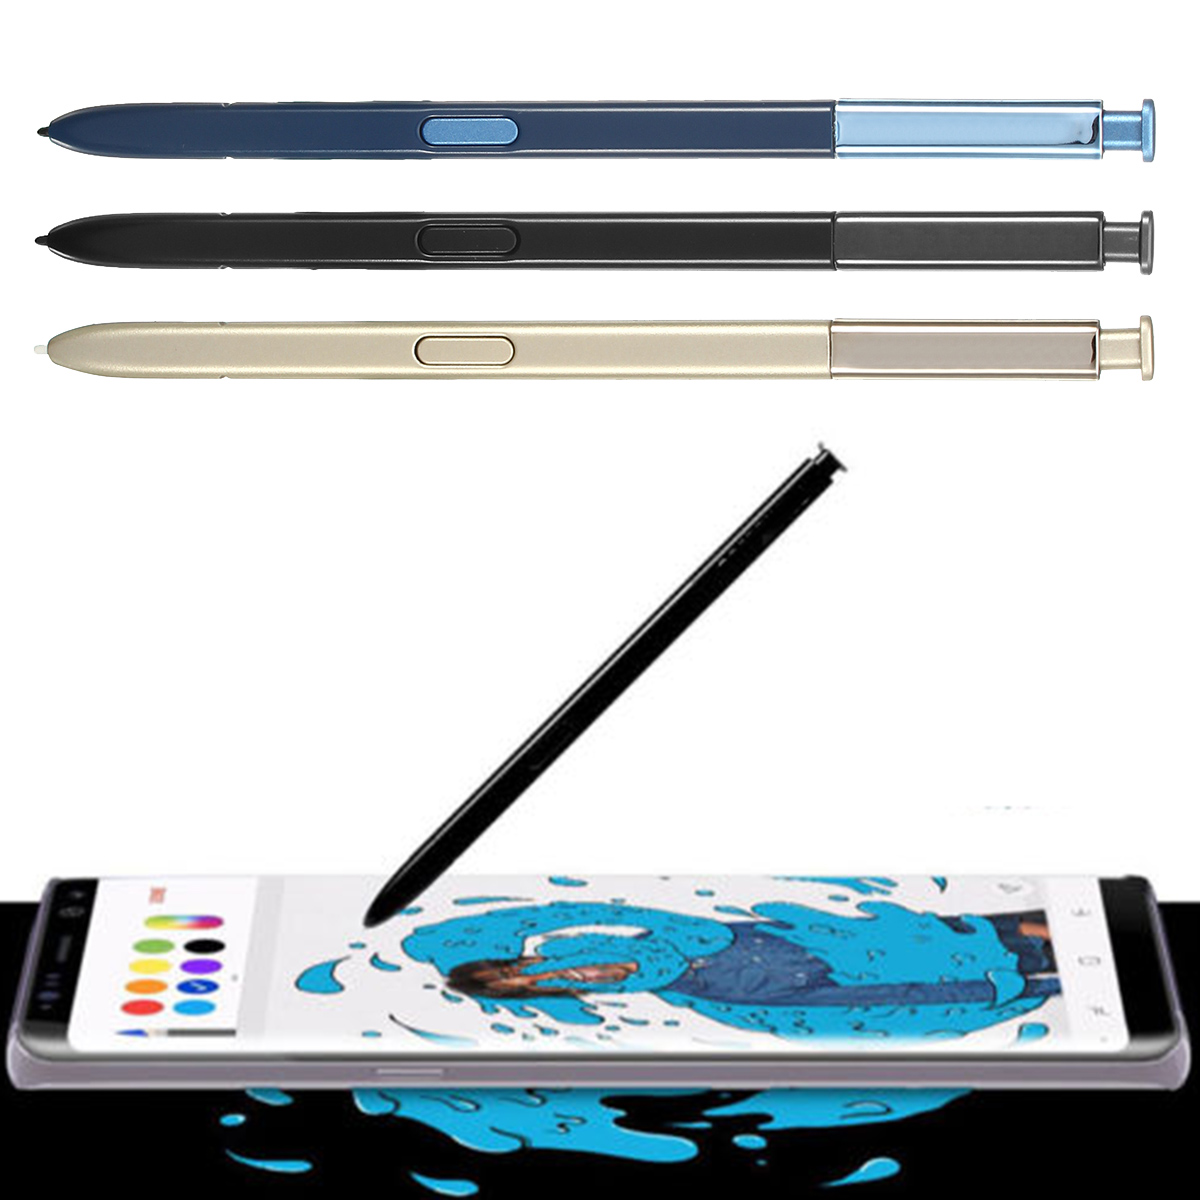 Stylus S Touch Screen Pen for Samsung Galaxy Note 8 AT&T Verizon T-Mobile Sprint